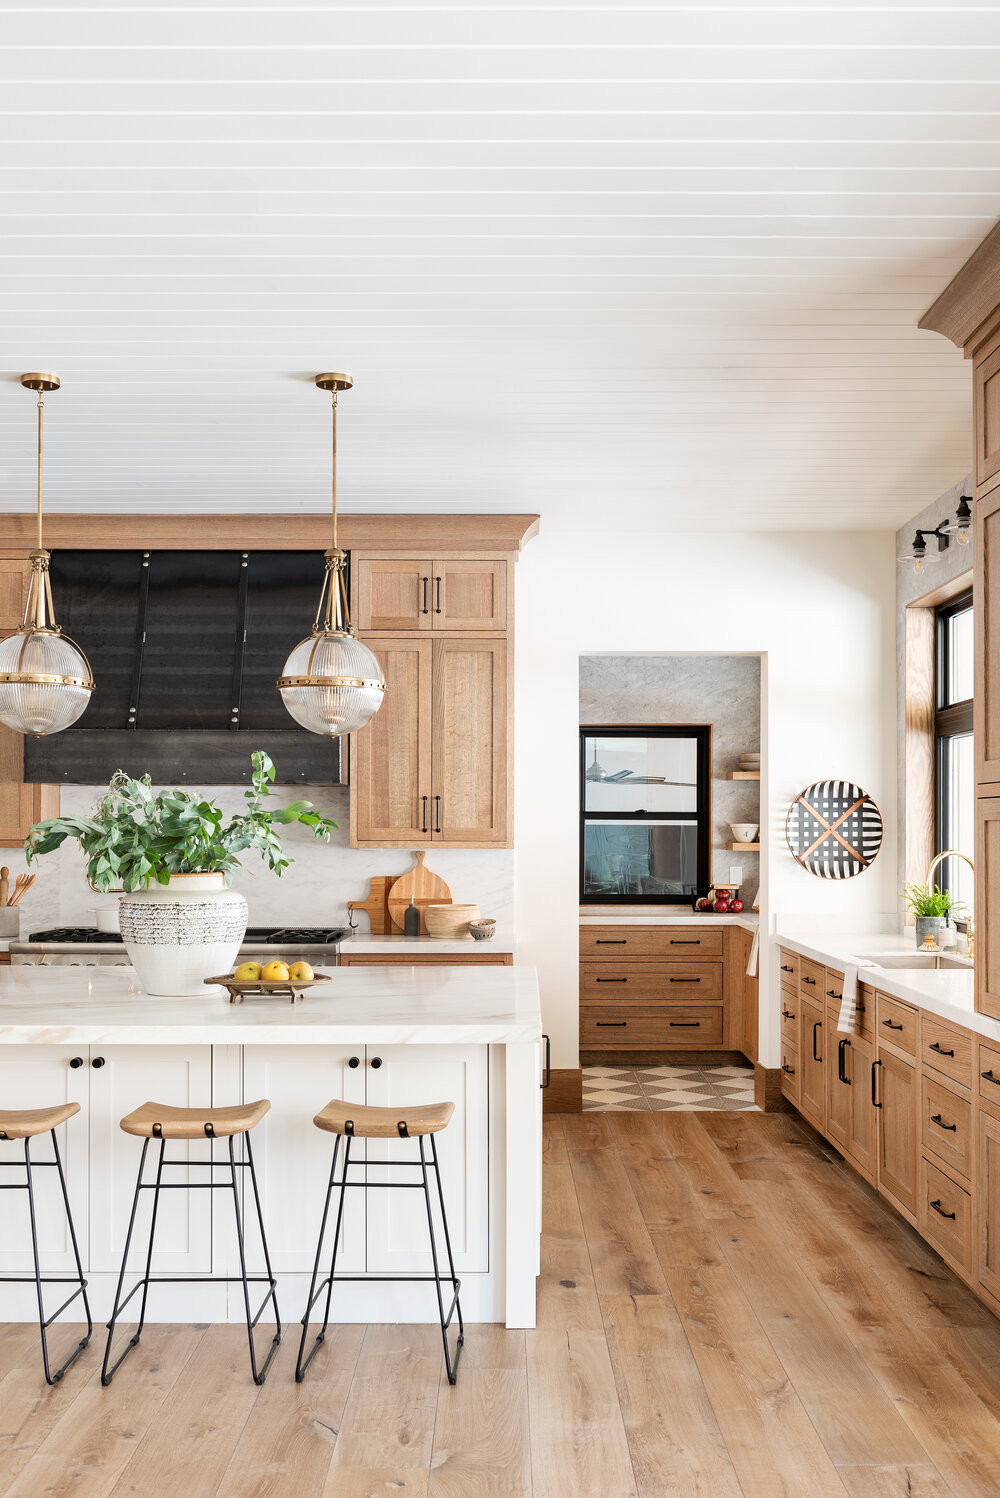 shiplap ceiling glass and brass pendant lights over quartz countertop white cabinets black pulls wooden stools with black metal legs wood cabinets dark metal hood fan vase with green branches black framed windows